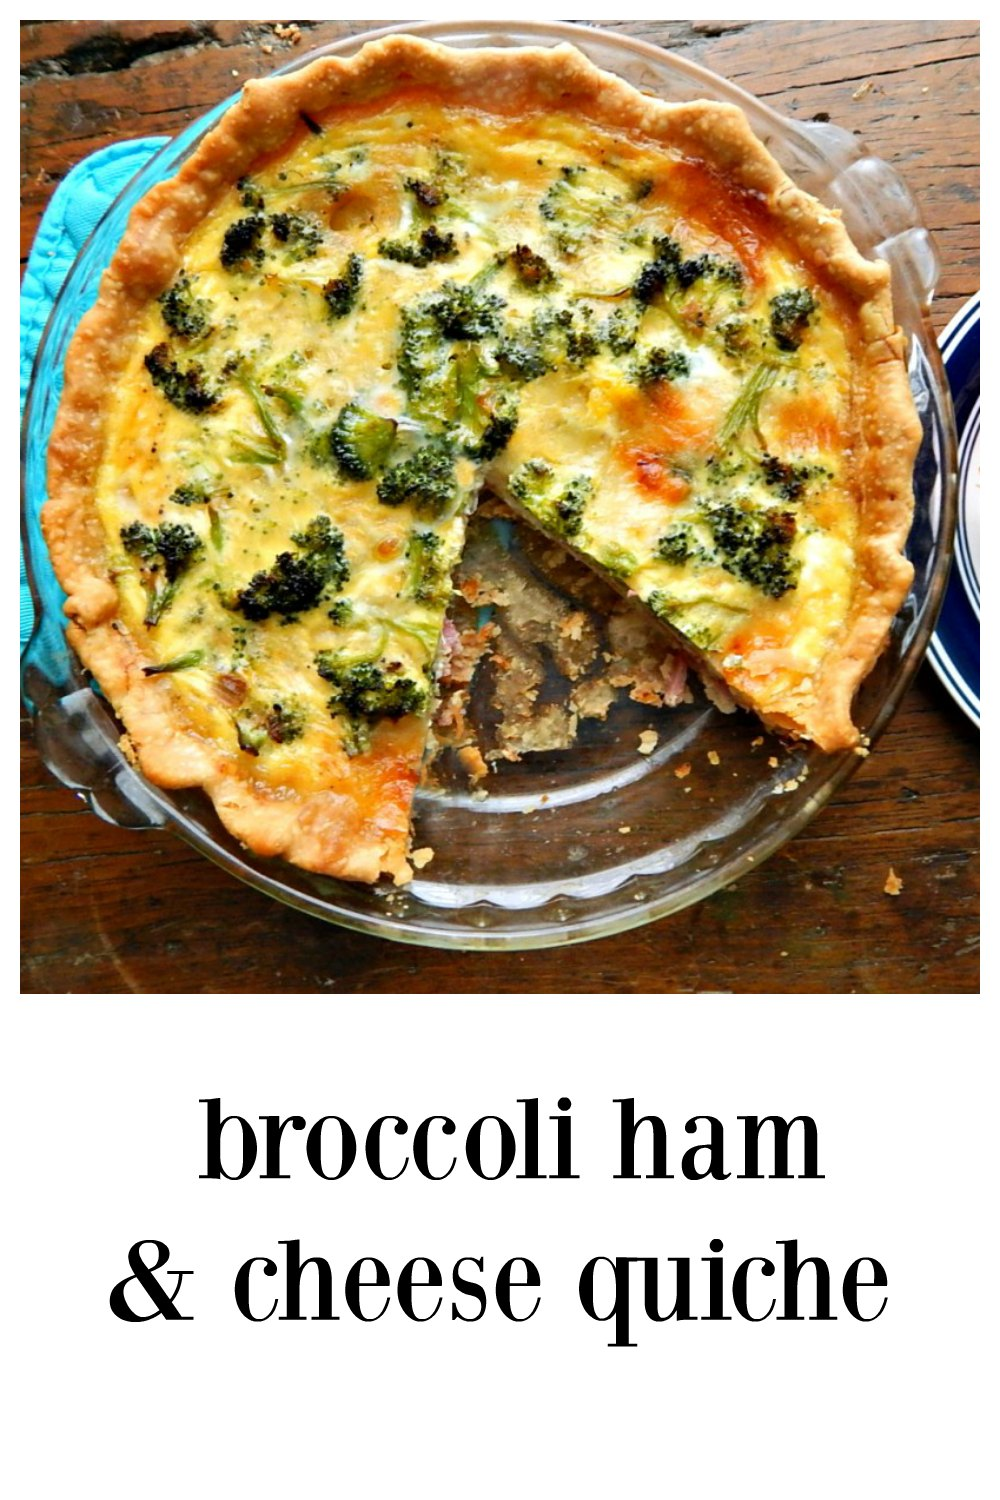 Broccoli Ham & Cheese Quiche - easy and delicious!! Bakes up beautifully with great instructions. #BroccoliCheeseQuiche #BroccoliQuiche #BroccoliHamCheeseQuiche #BroccoliCheddarQuiche #EasyQuiche